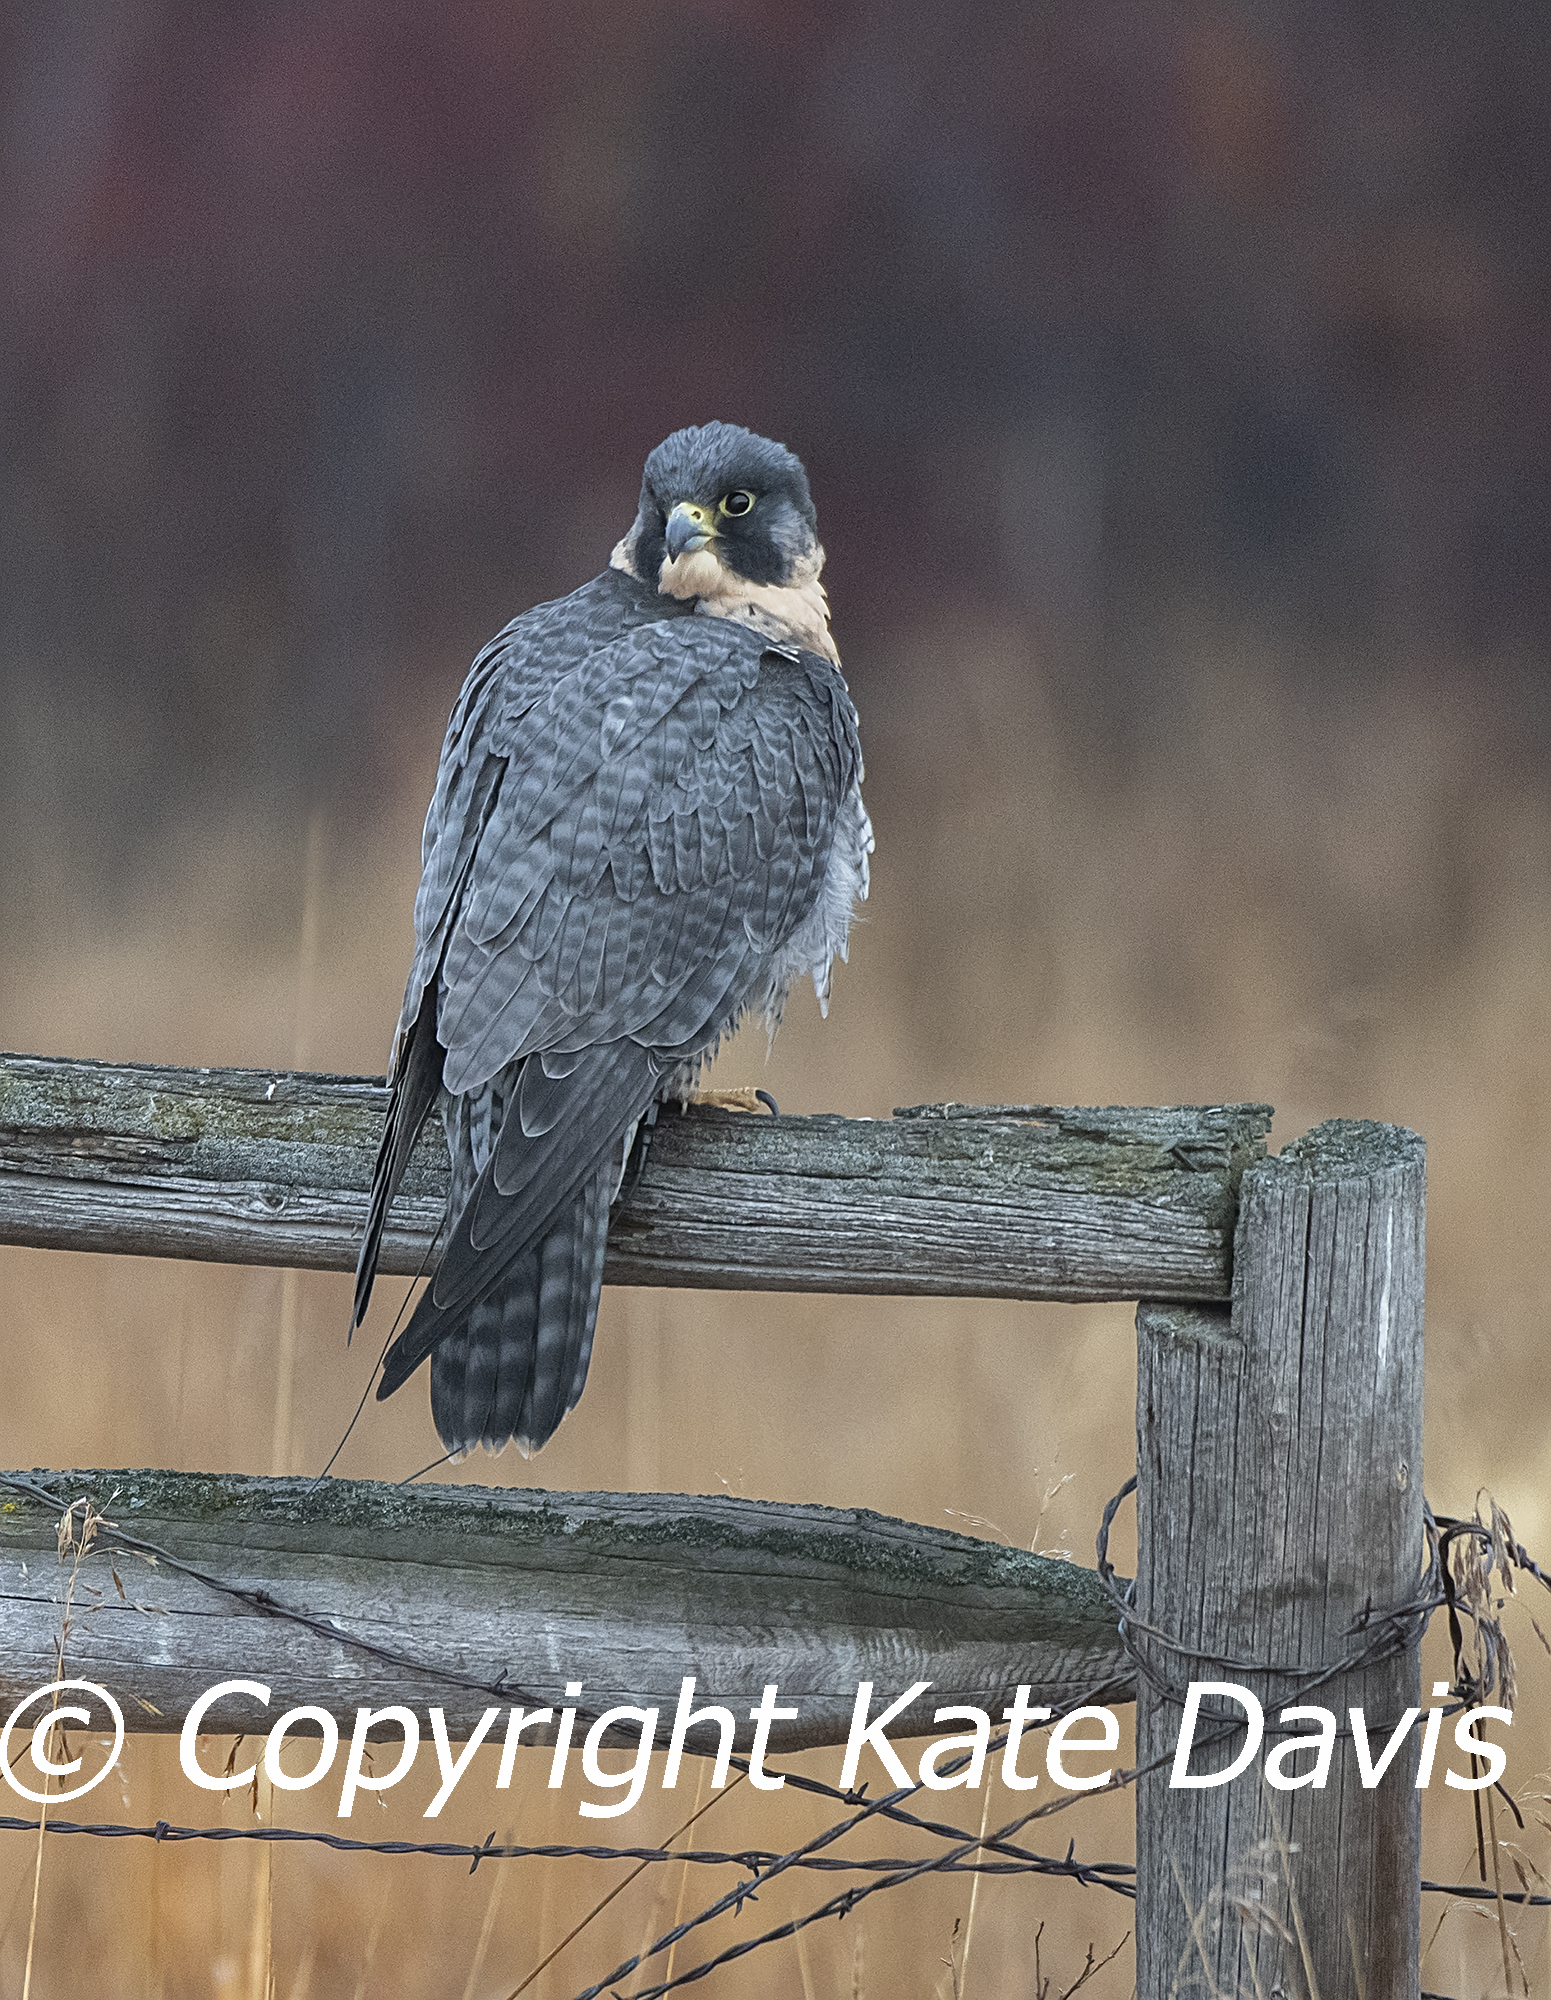 Sibley the Peregrine taking a break, 17 years of age in 2020